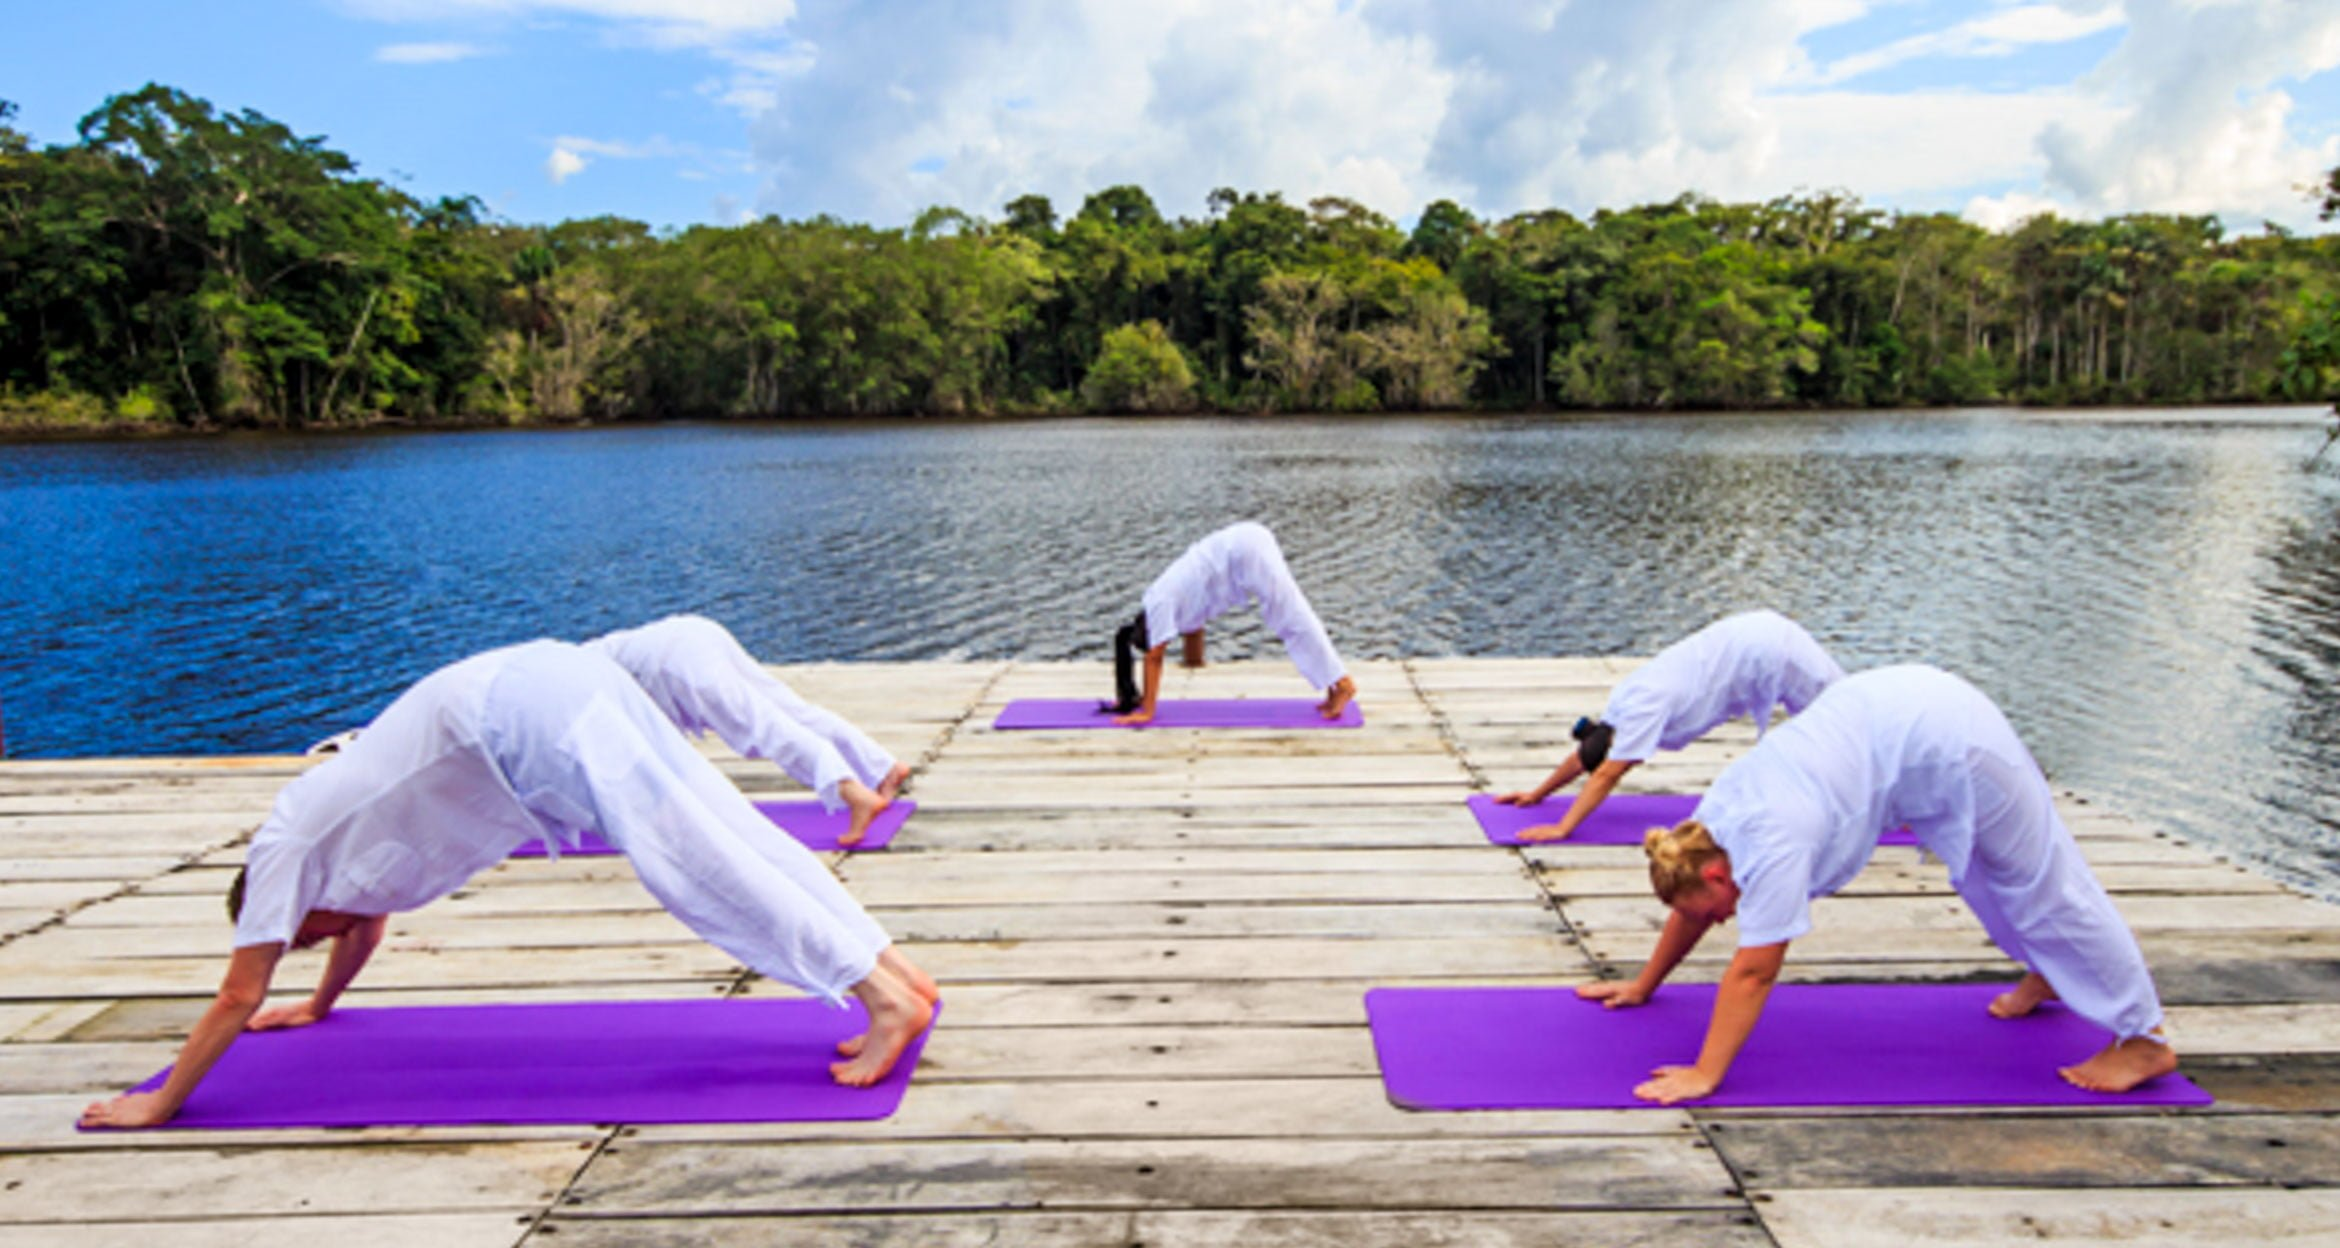 Yoga class on outdoor deck of La Selva Amazon Lodge